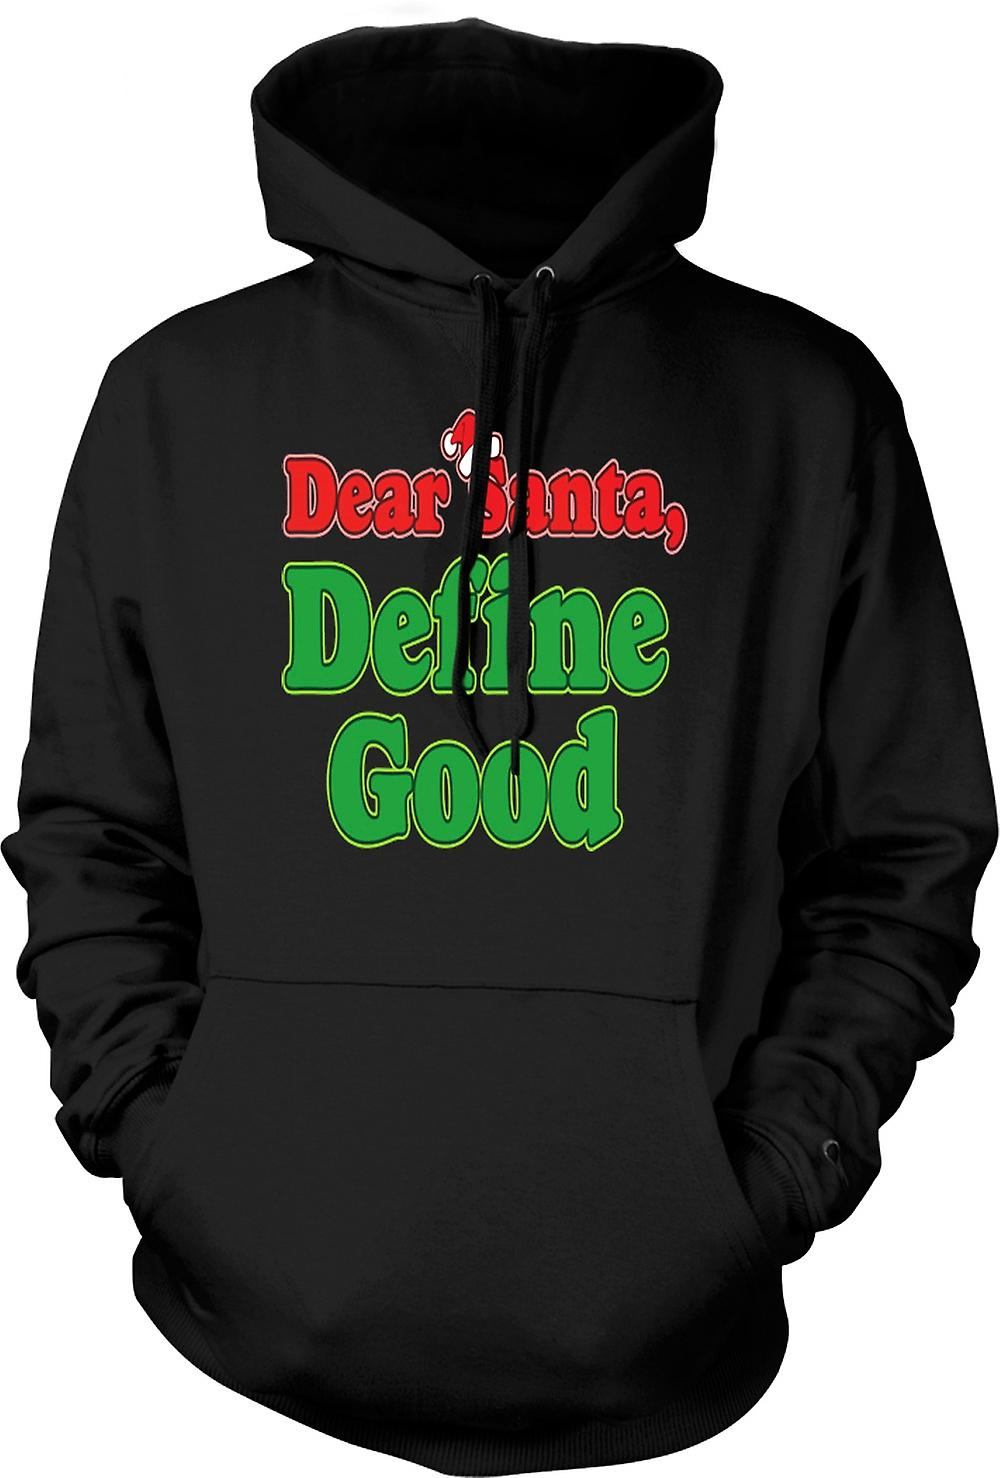 Mens Hoodie - Dear Santa, Define Good - Funny